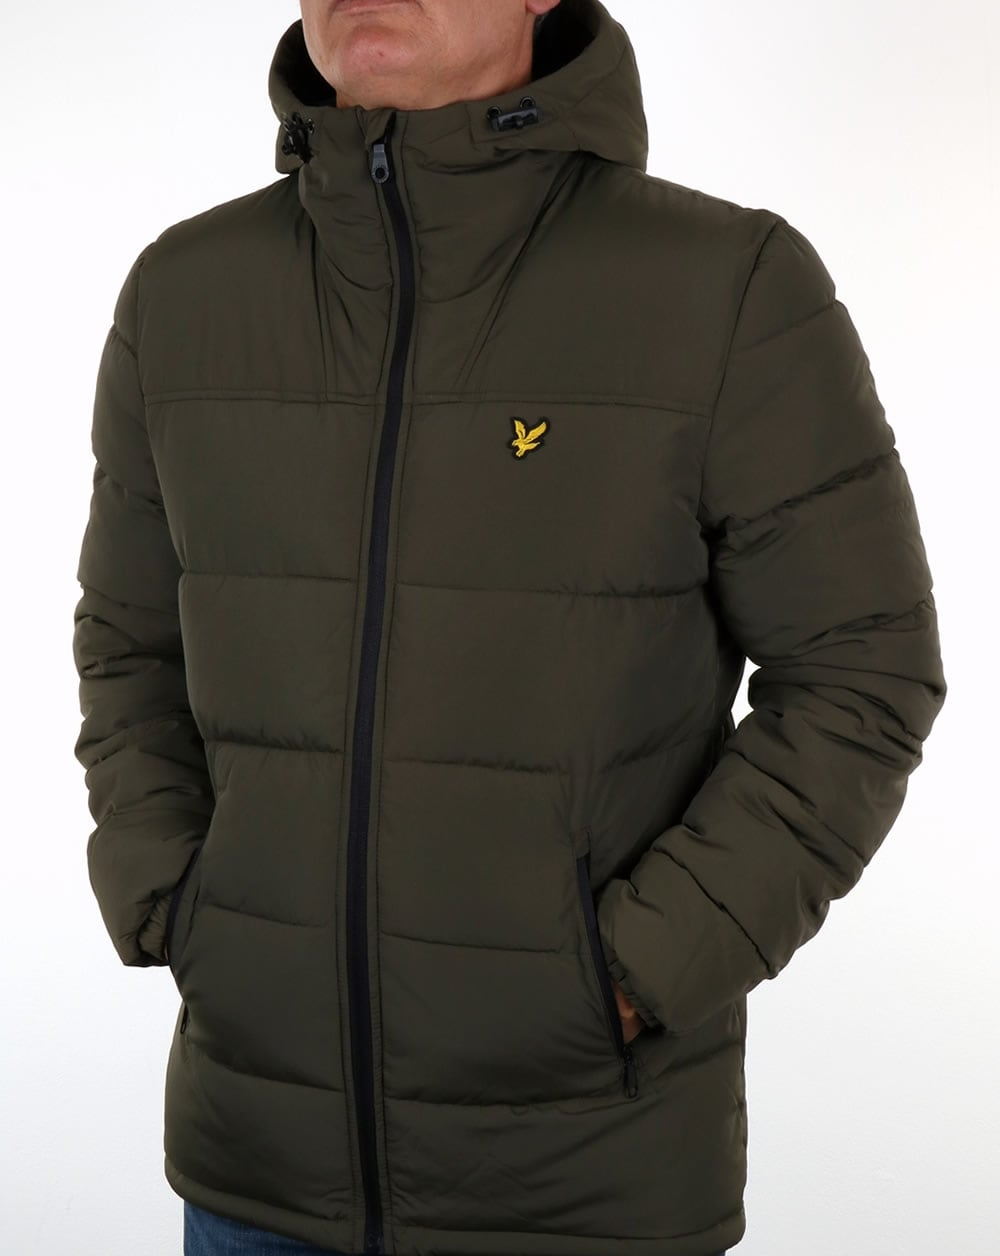 lyle and scott wadded jacket olive men 39 s coat padded. Black Bedroom Furniture Sets. Home Design Ideas